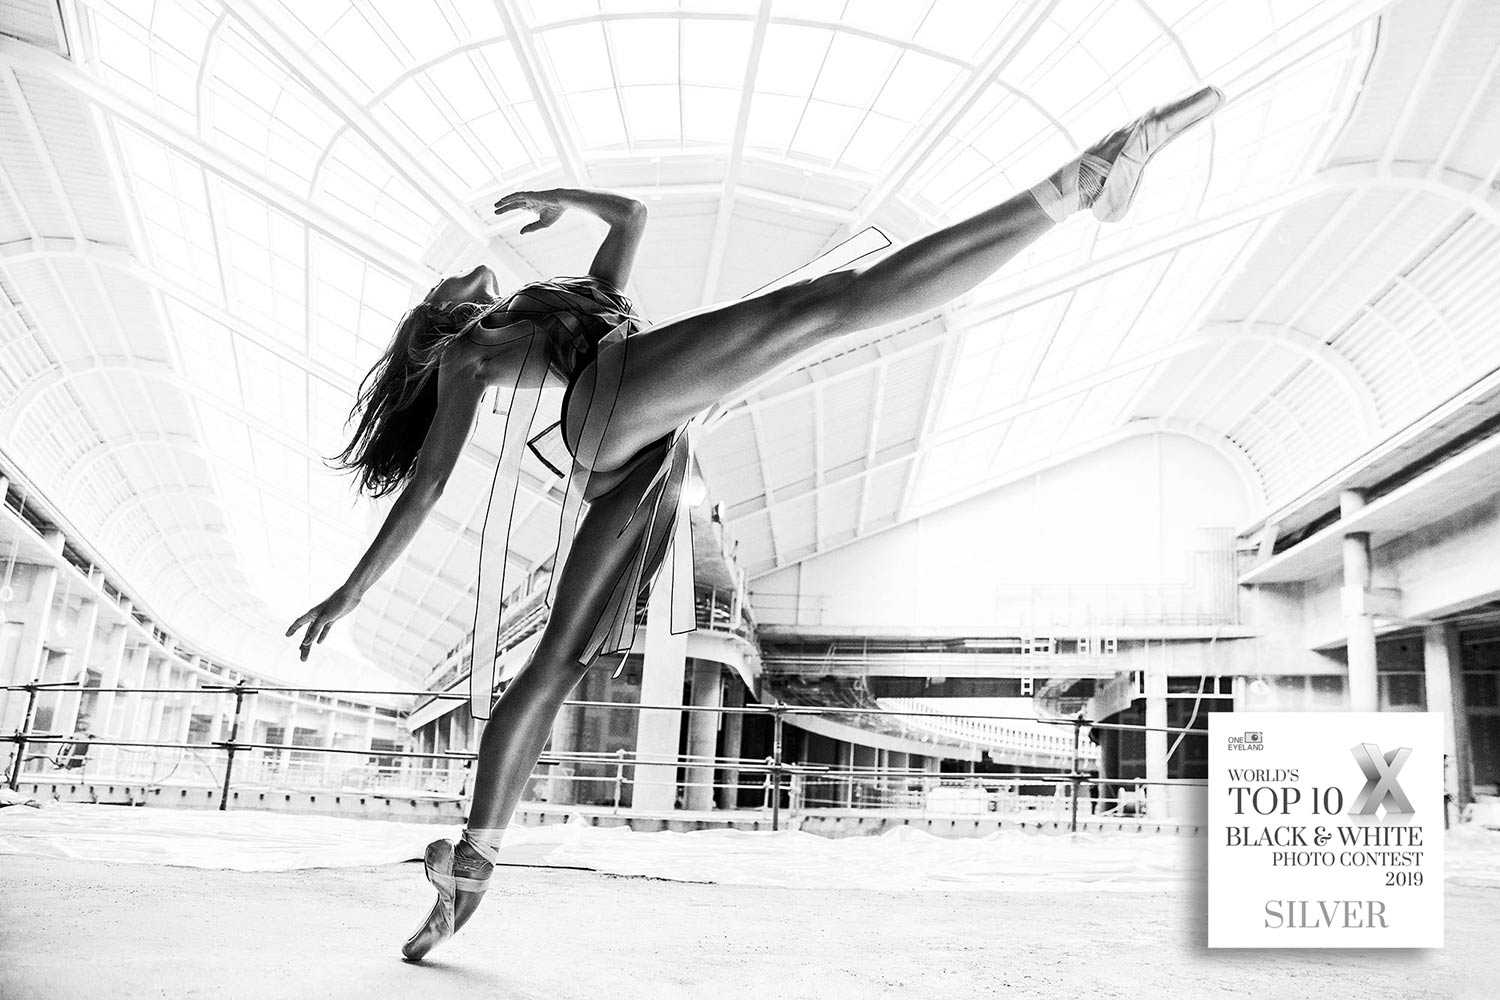 06_TOP10B&W_Brodziak_Ballerina